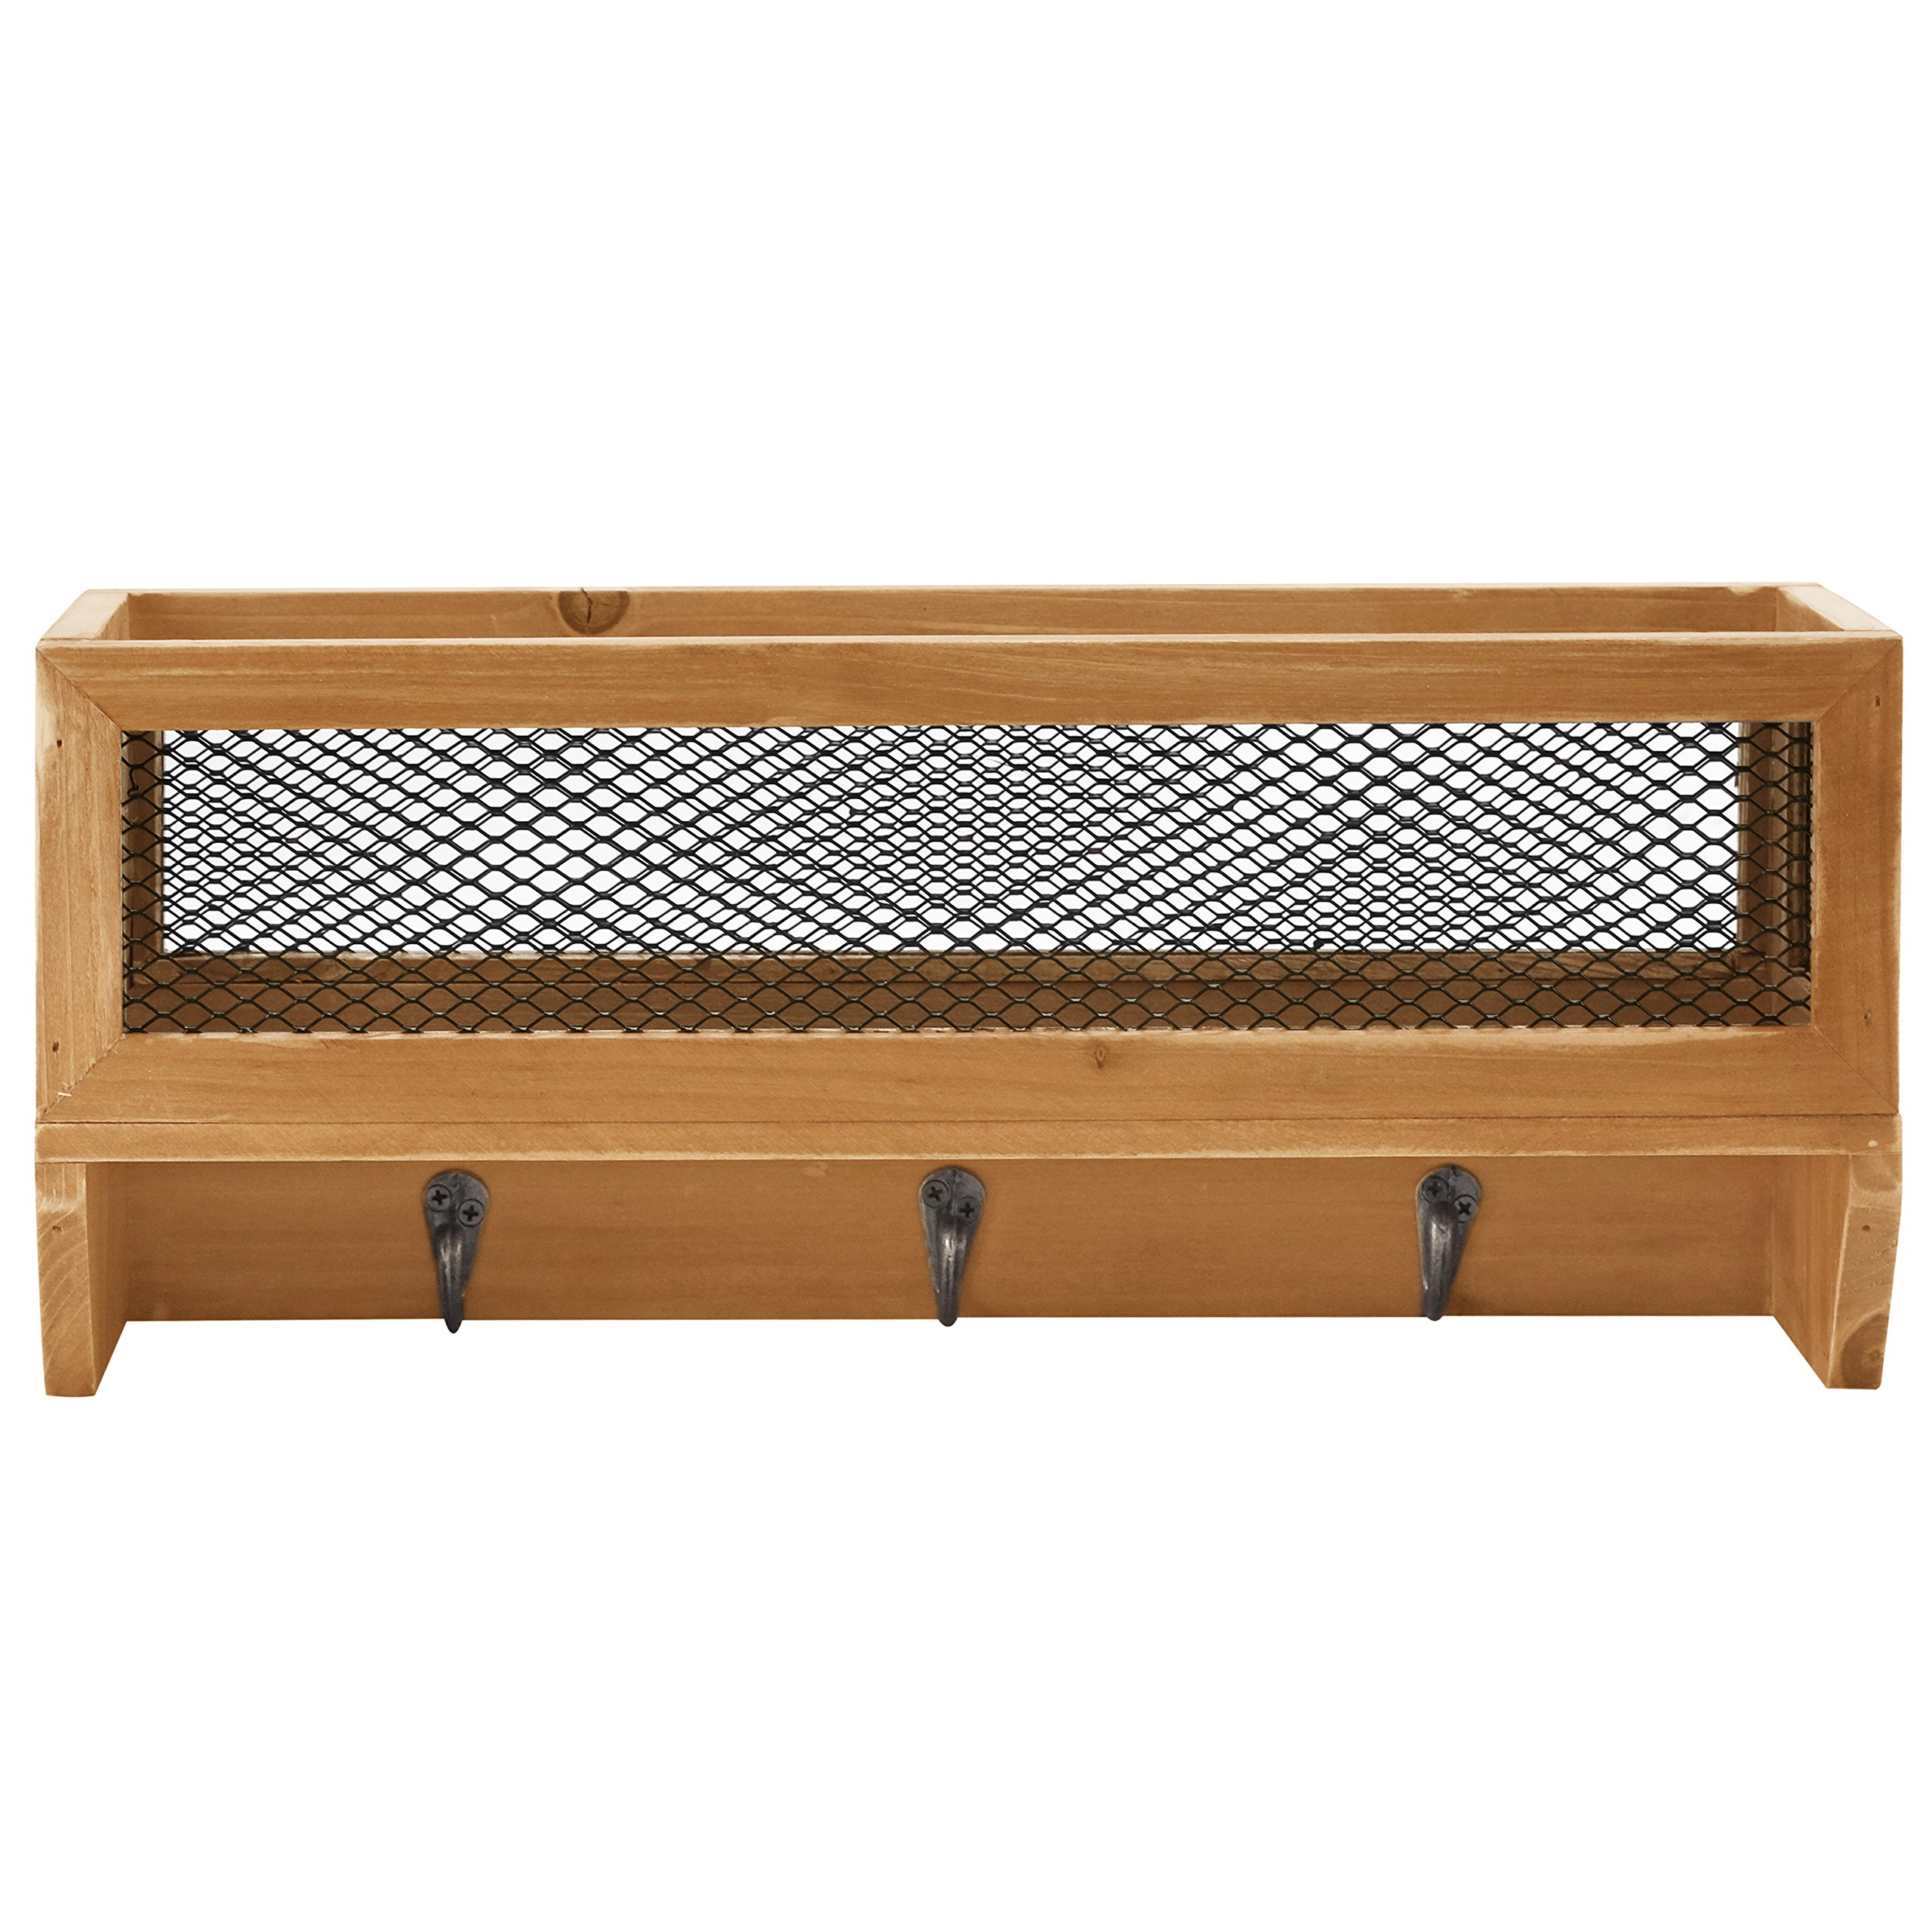 3-Hook Rustic Wooden Wall Mounted Entryway Organizer Rack with Metal Mesh Storage Basket by MyGift (Image #3)